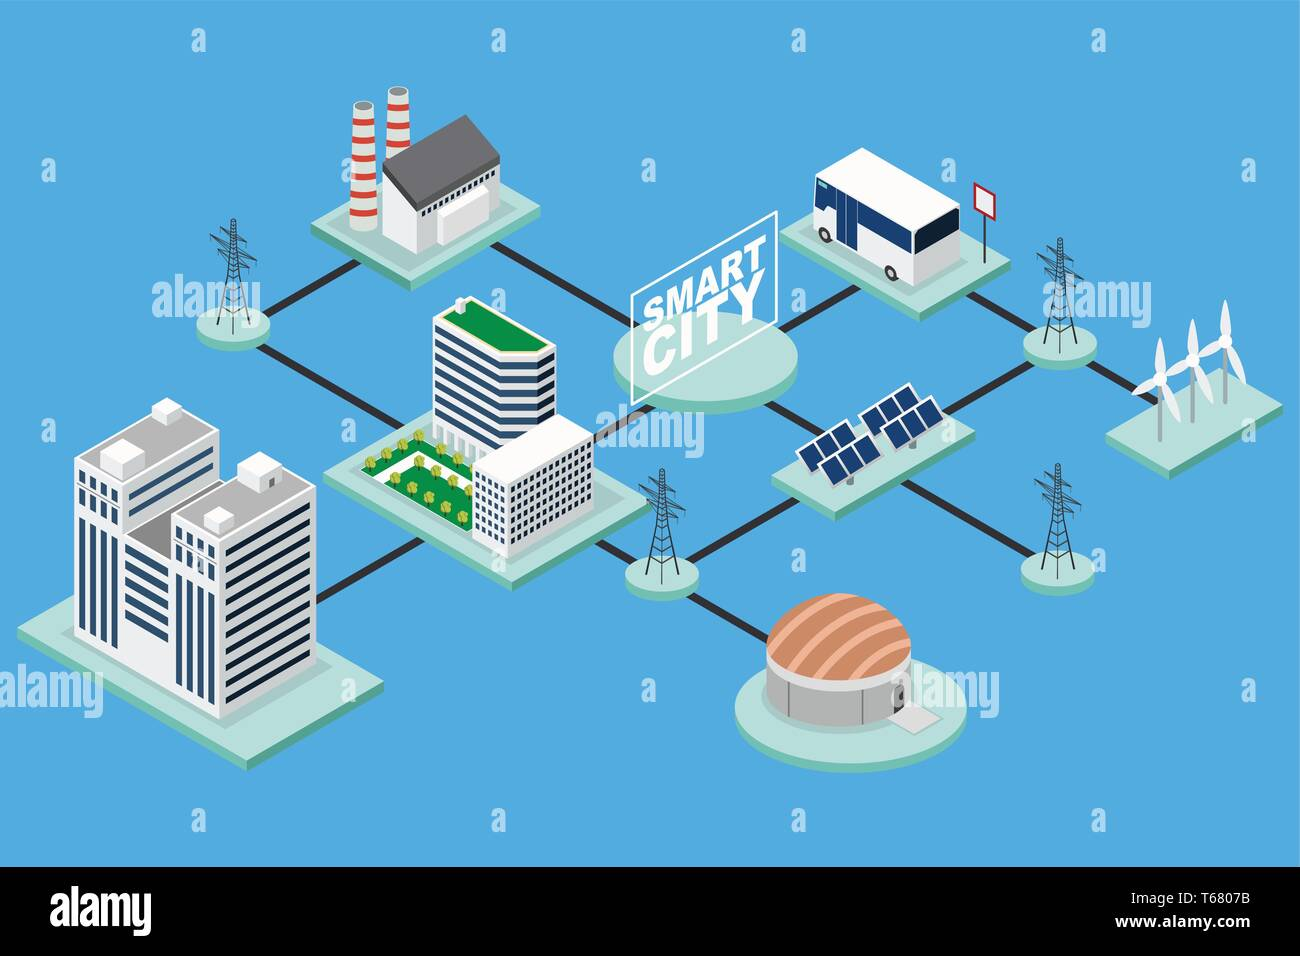 A vector illustration of Smart City Technology Conceptual Isometric - Stock Vector